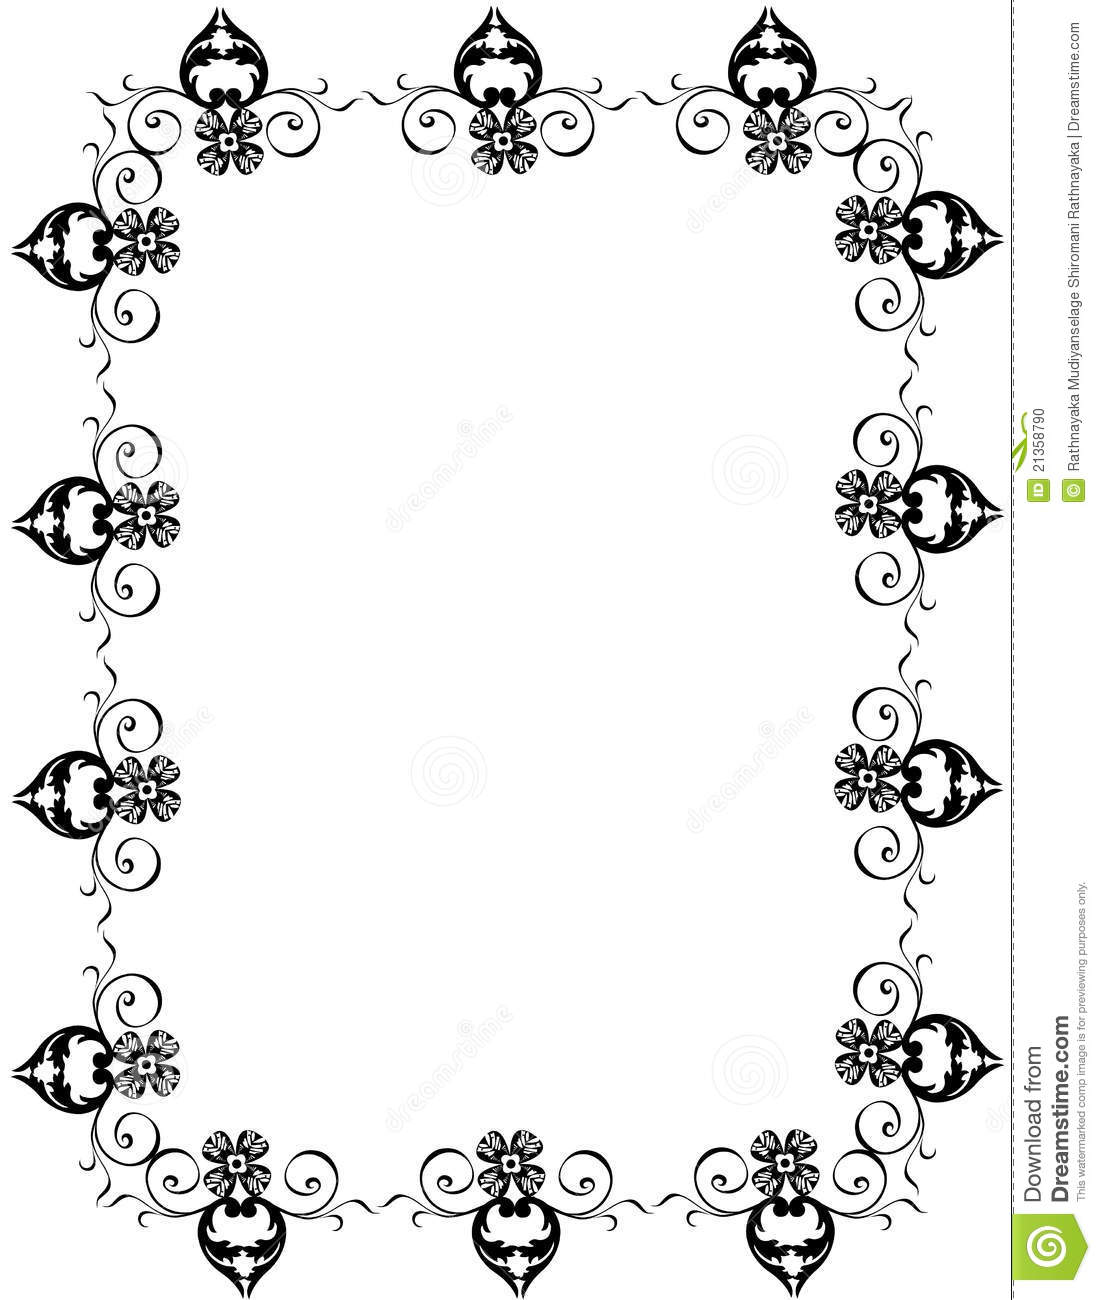 Decorative Black Flower Border Stock Image